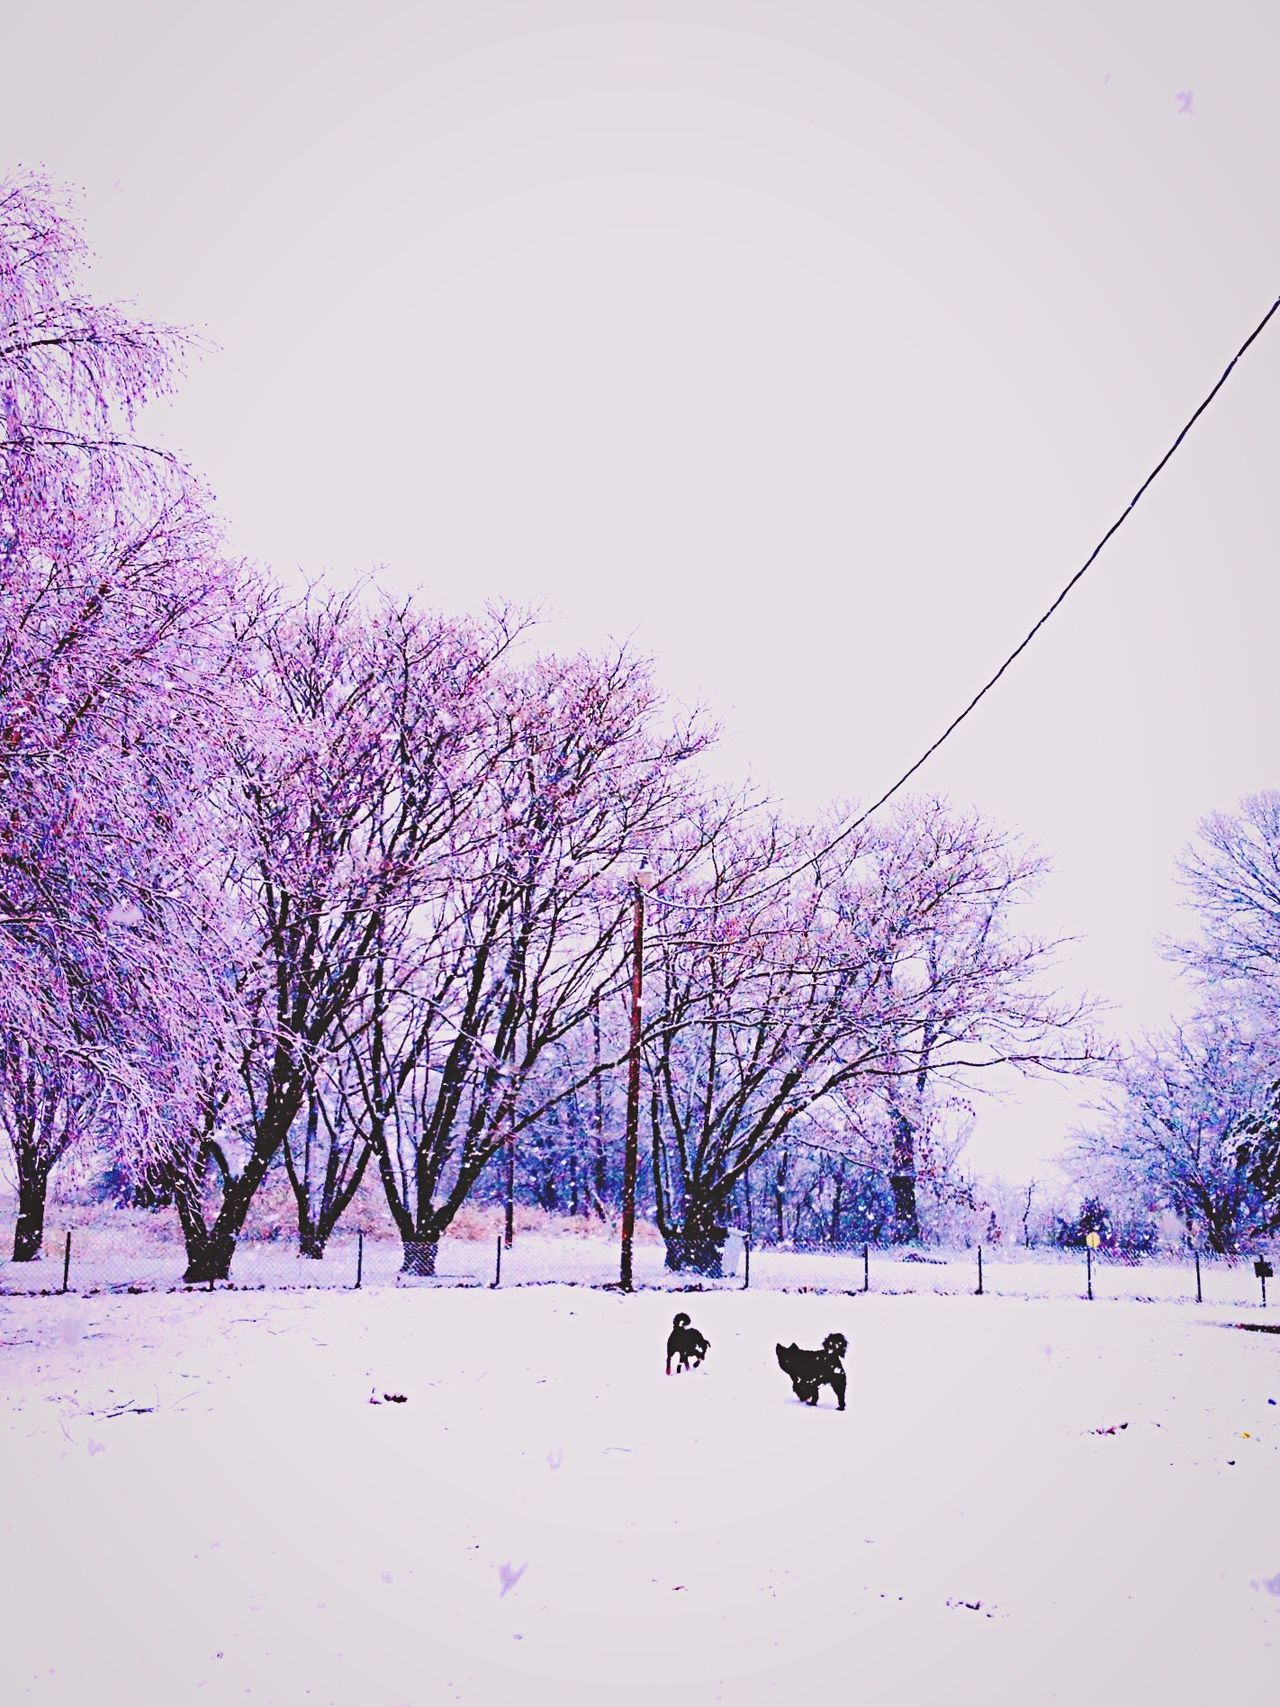 2013 Oklahoma winter storm😍 Snow Covered Dogslife Oklahoma Weather Doggy Love Doggysnowday Snowstorm Purple And White Snowday Snow ❄ Mother Natures Beauty... Mother Nature Nature's Diversities